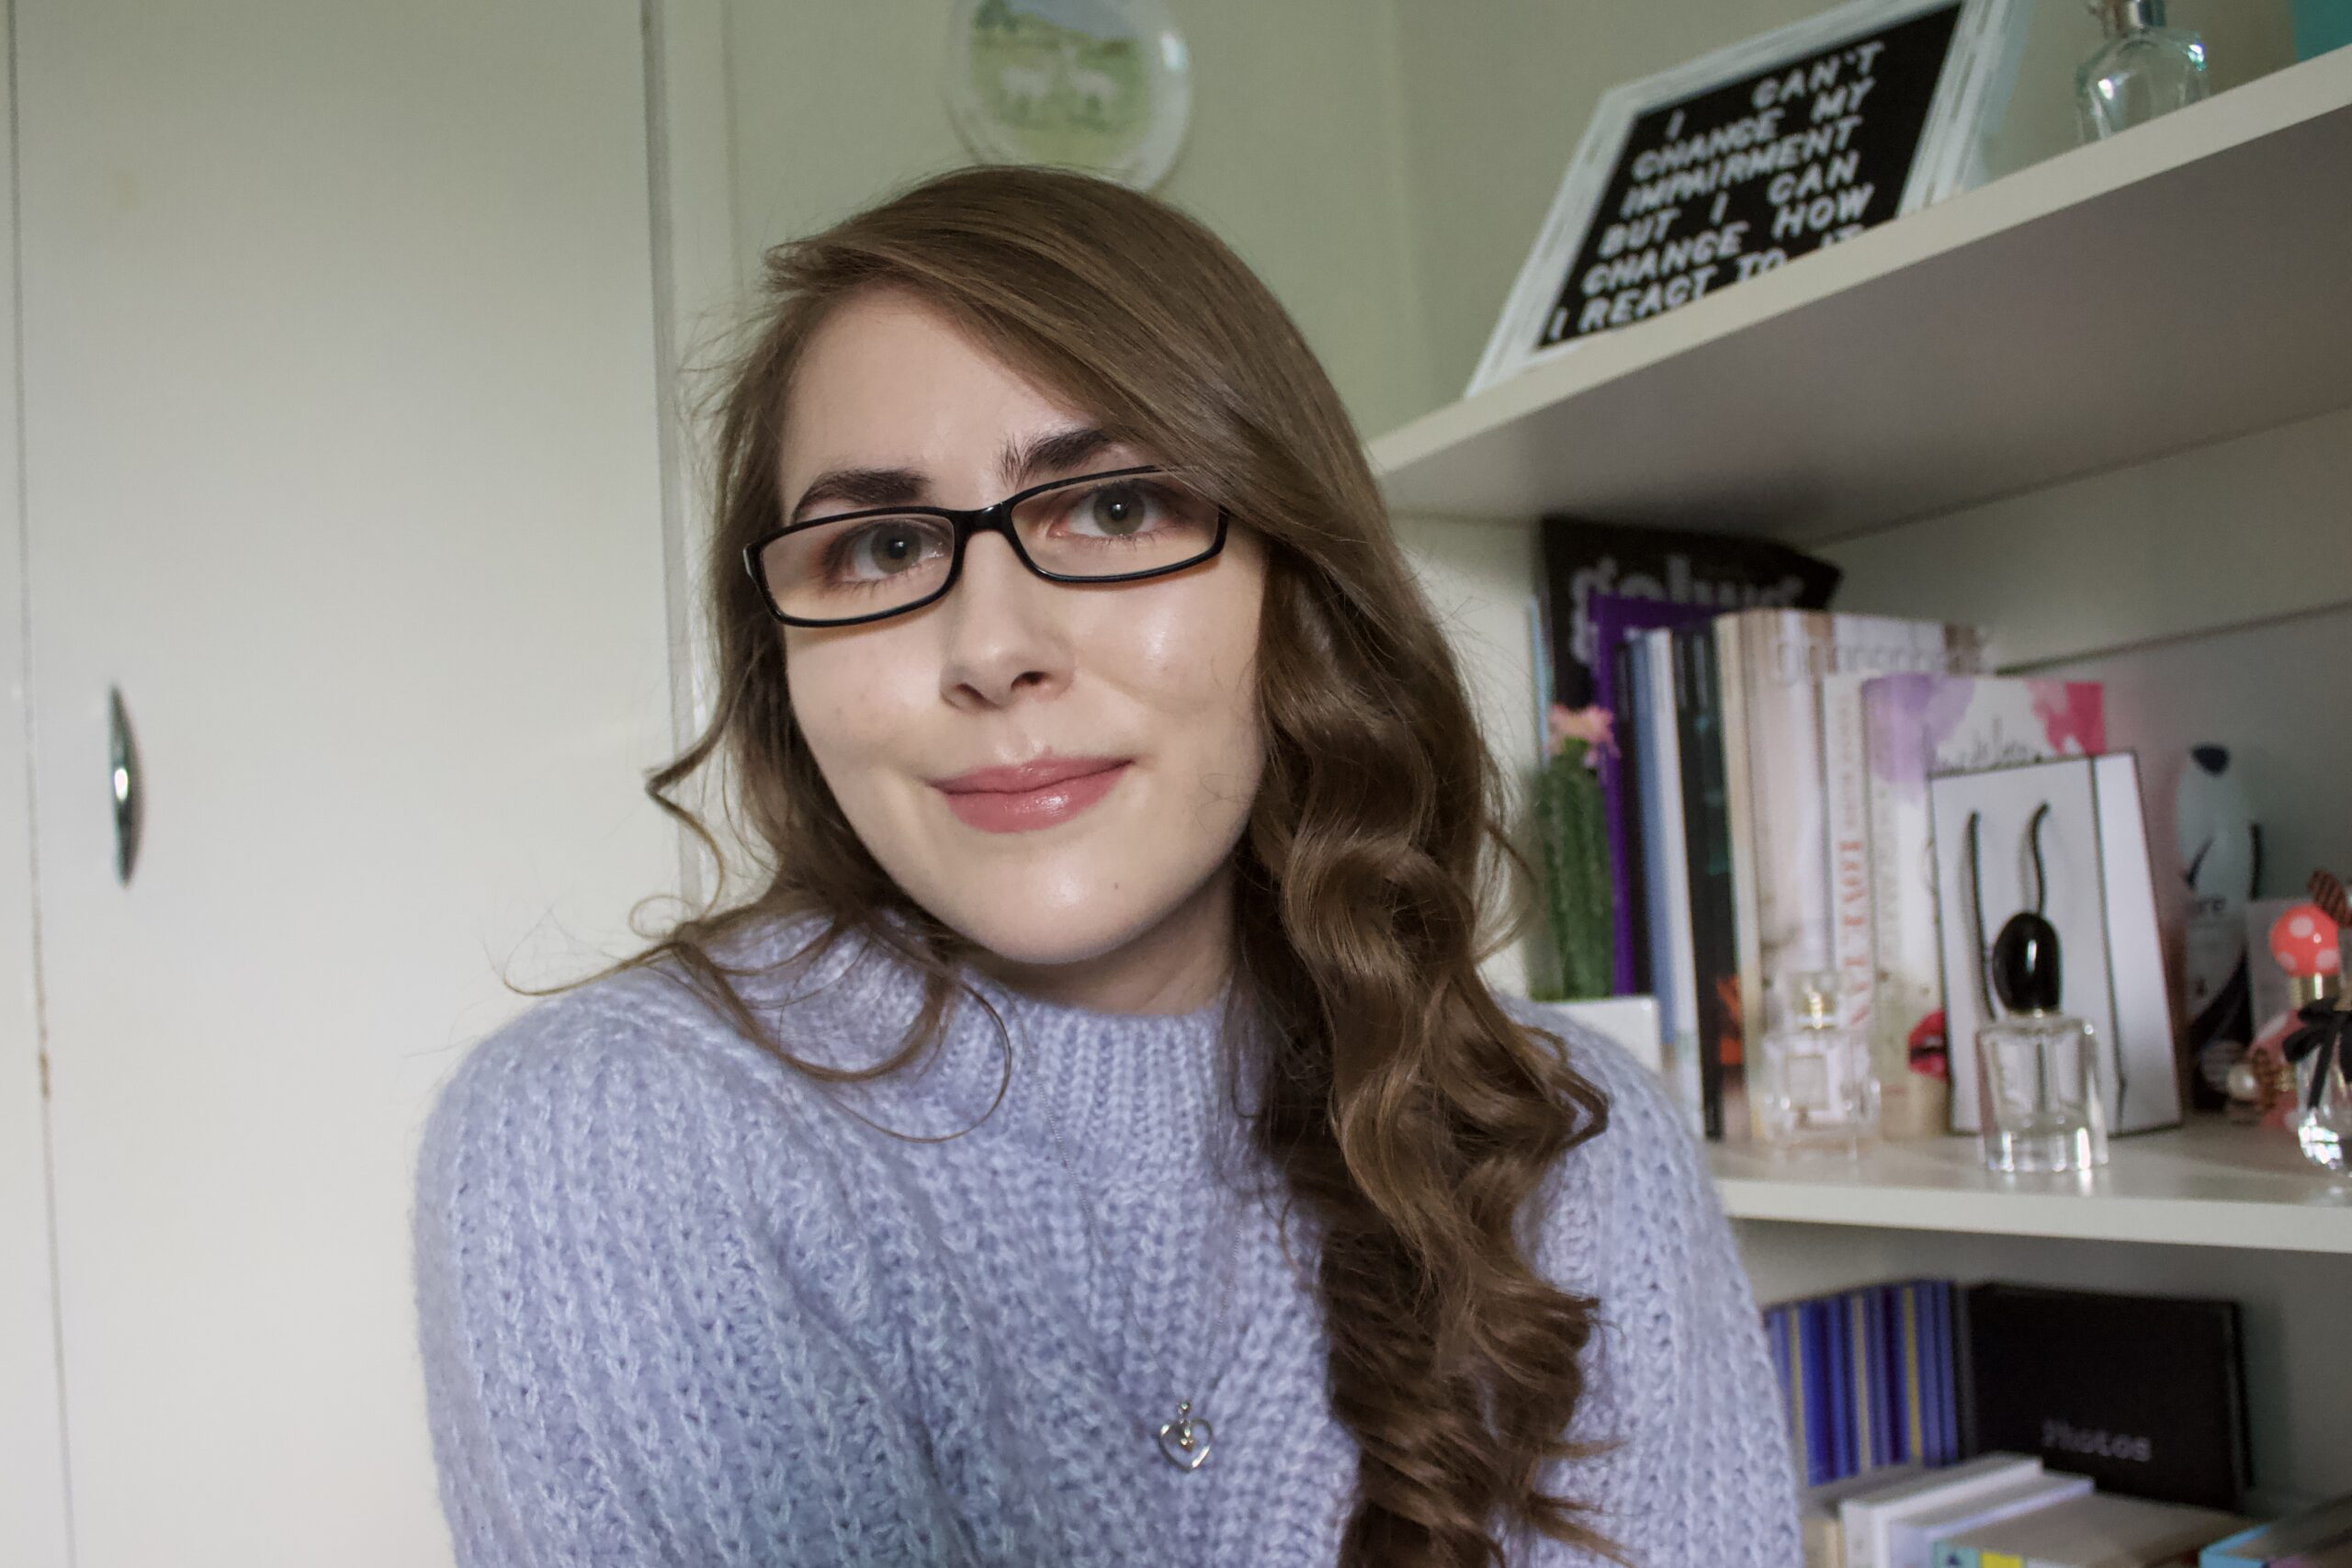 Elin sitting in front of a white bookcase, she's wearing a lilac knitted jumper and a dainty silver heart shaped necklace